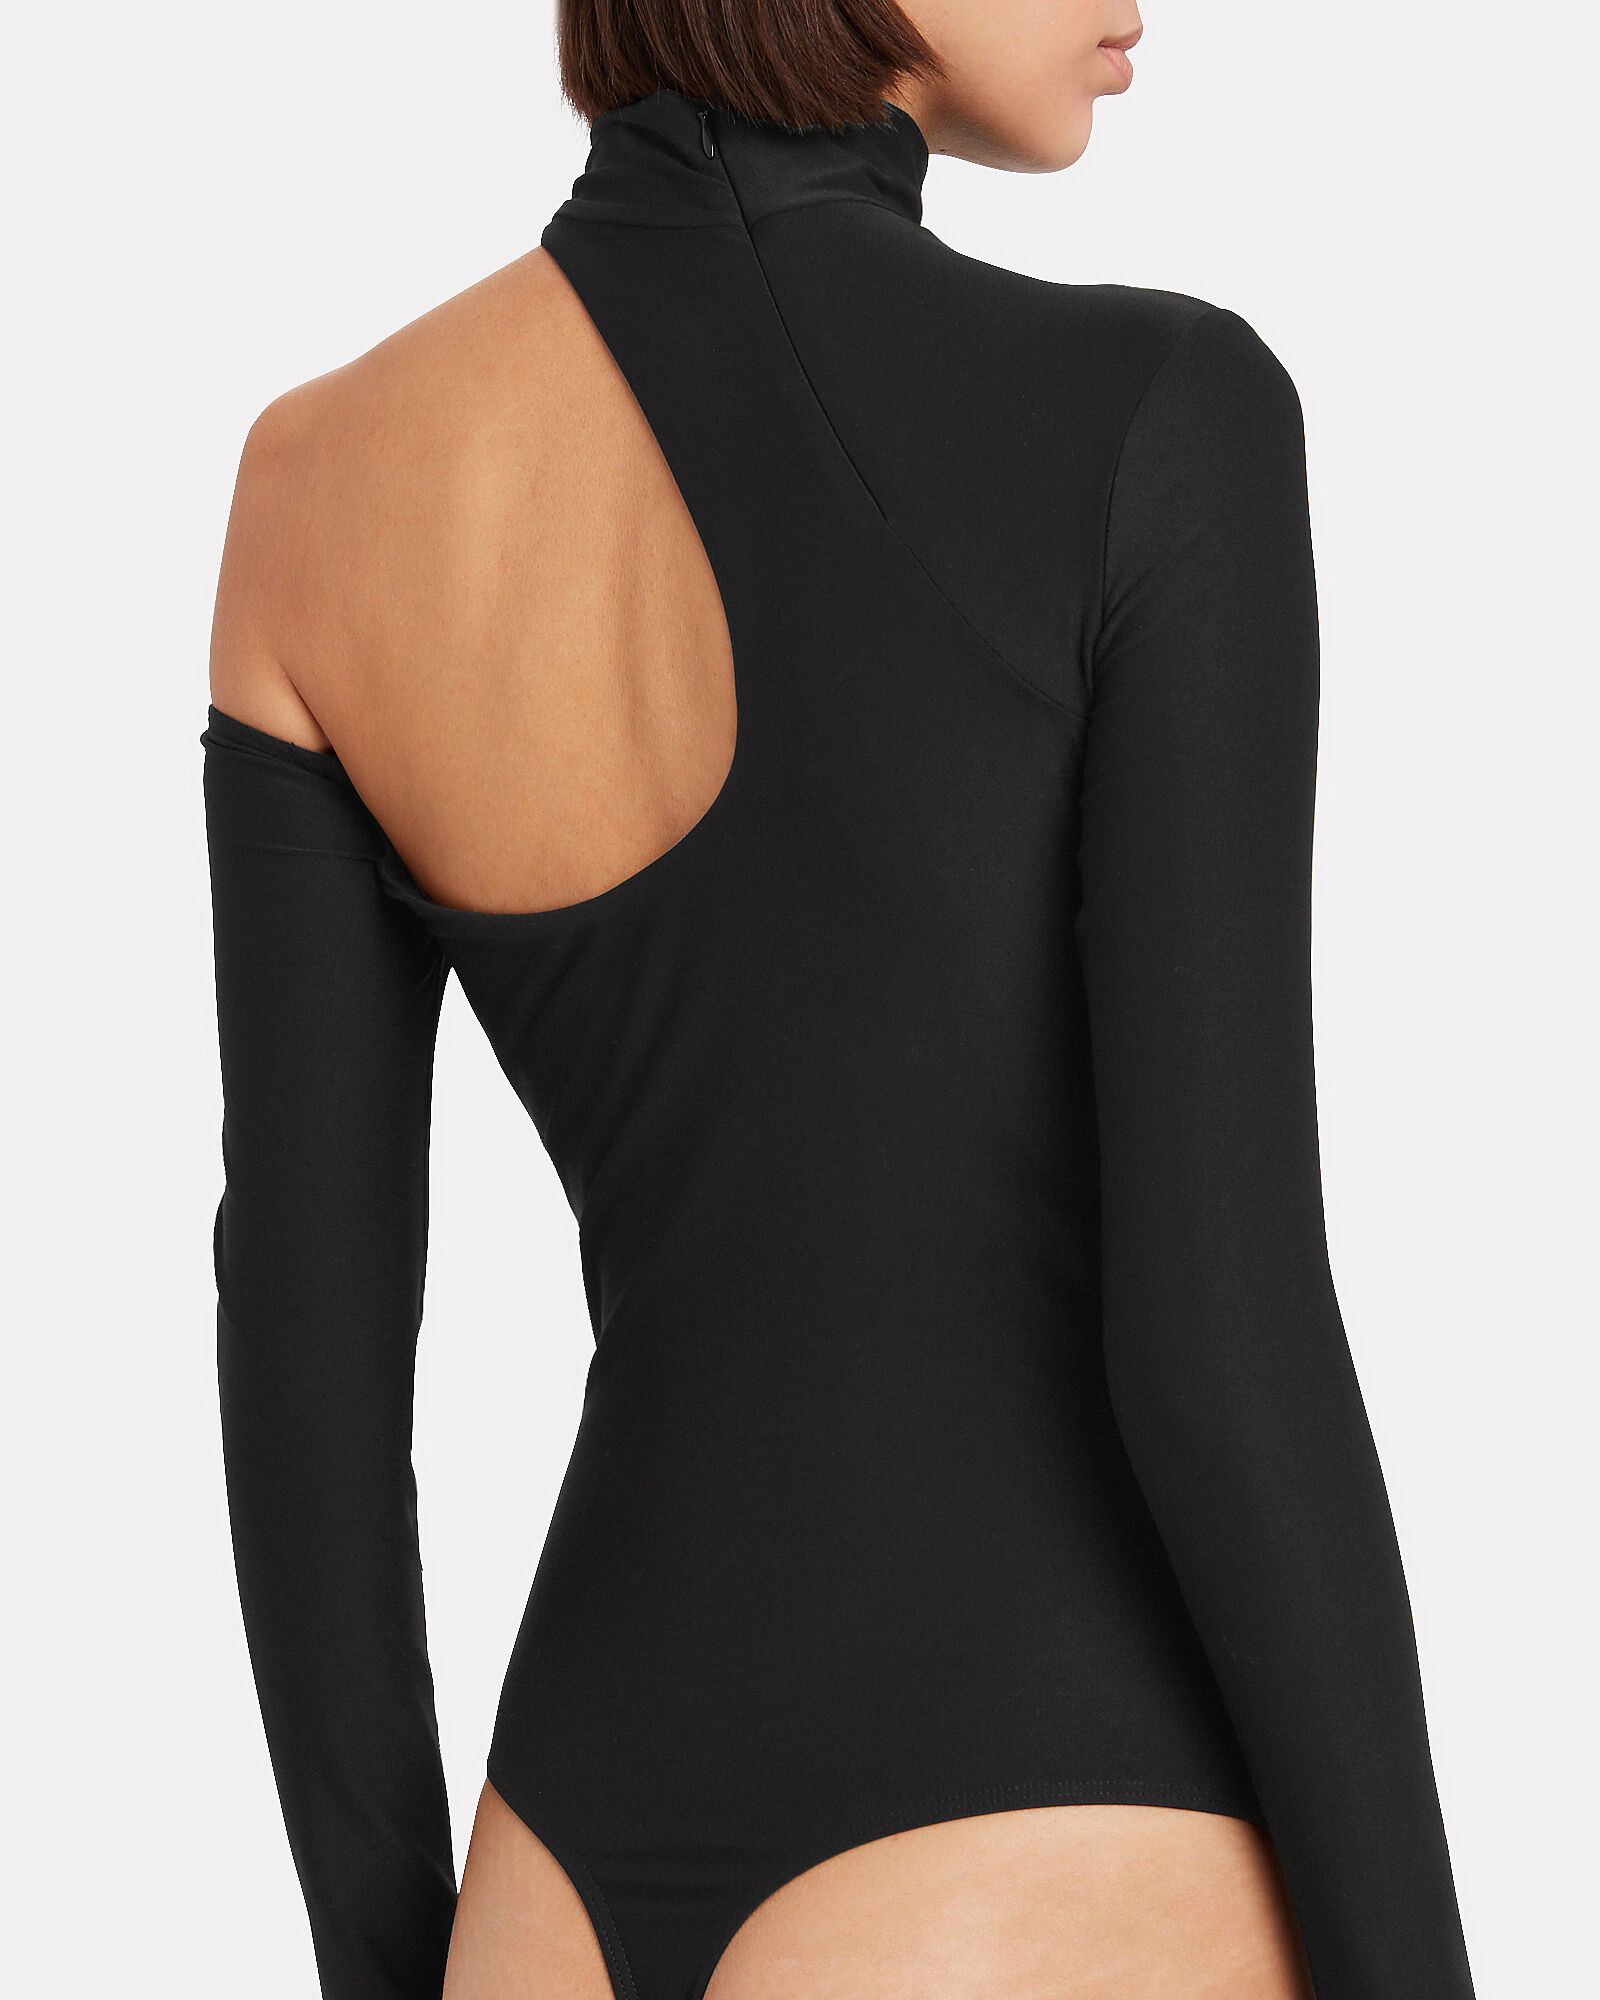 Barclay Jersey Cut-Out Bodysuit, BLACK, hi-res